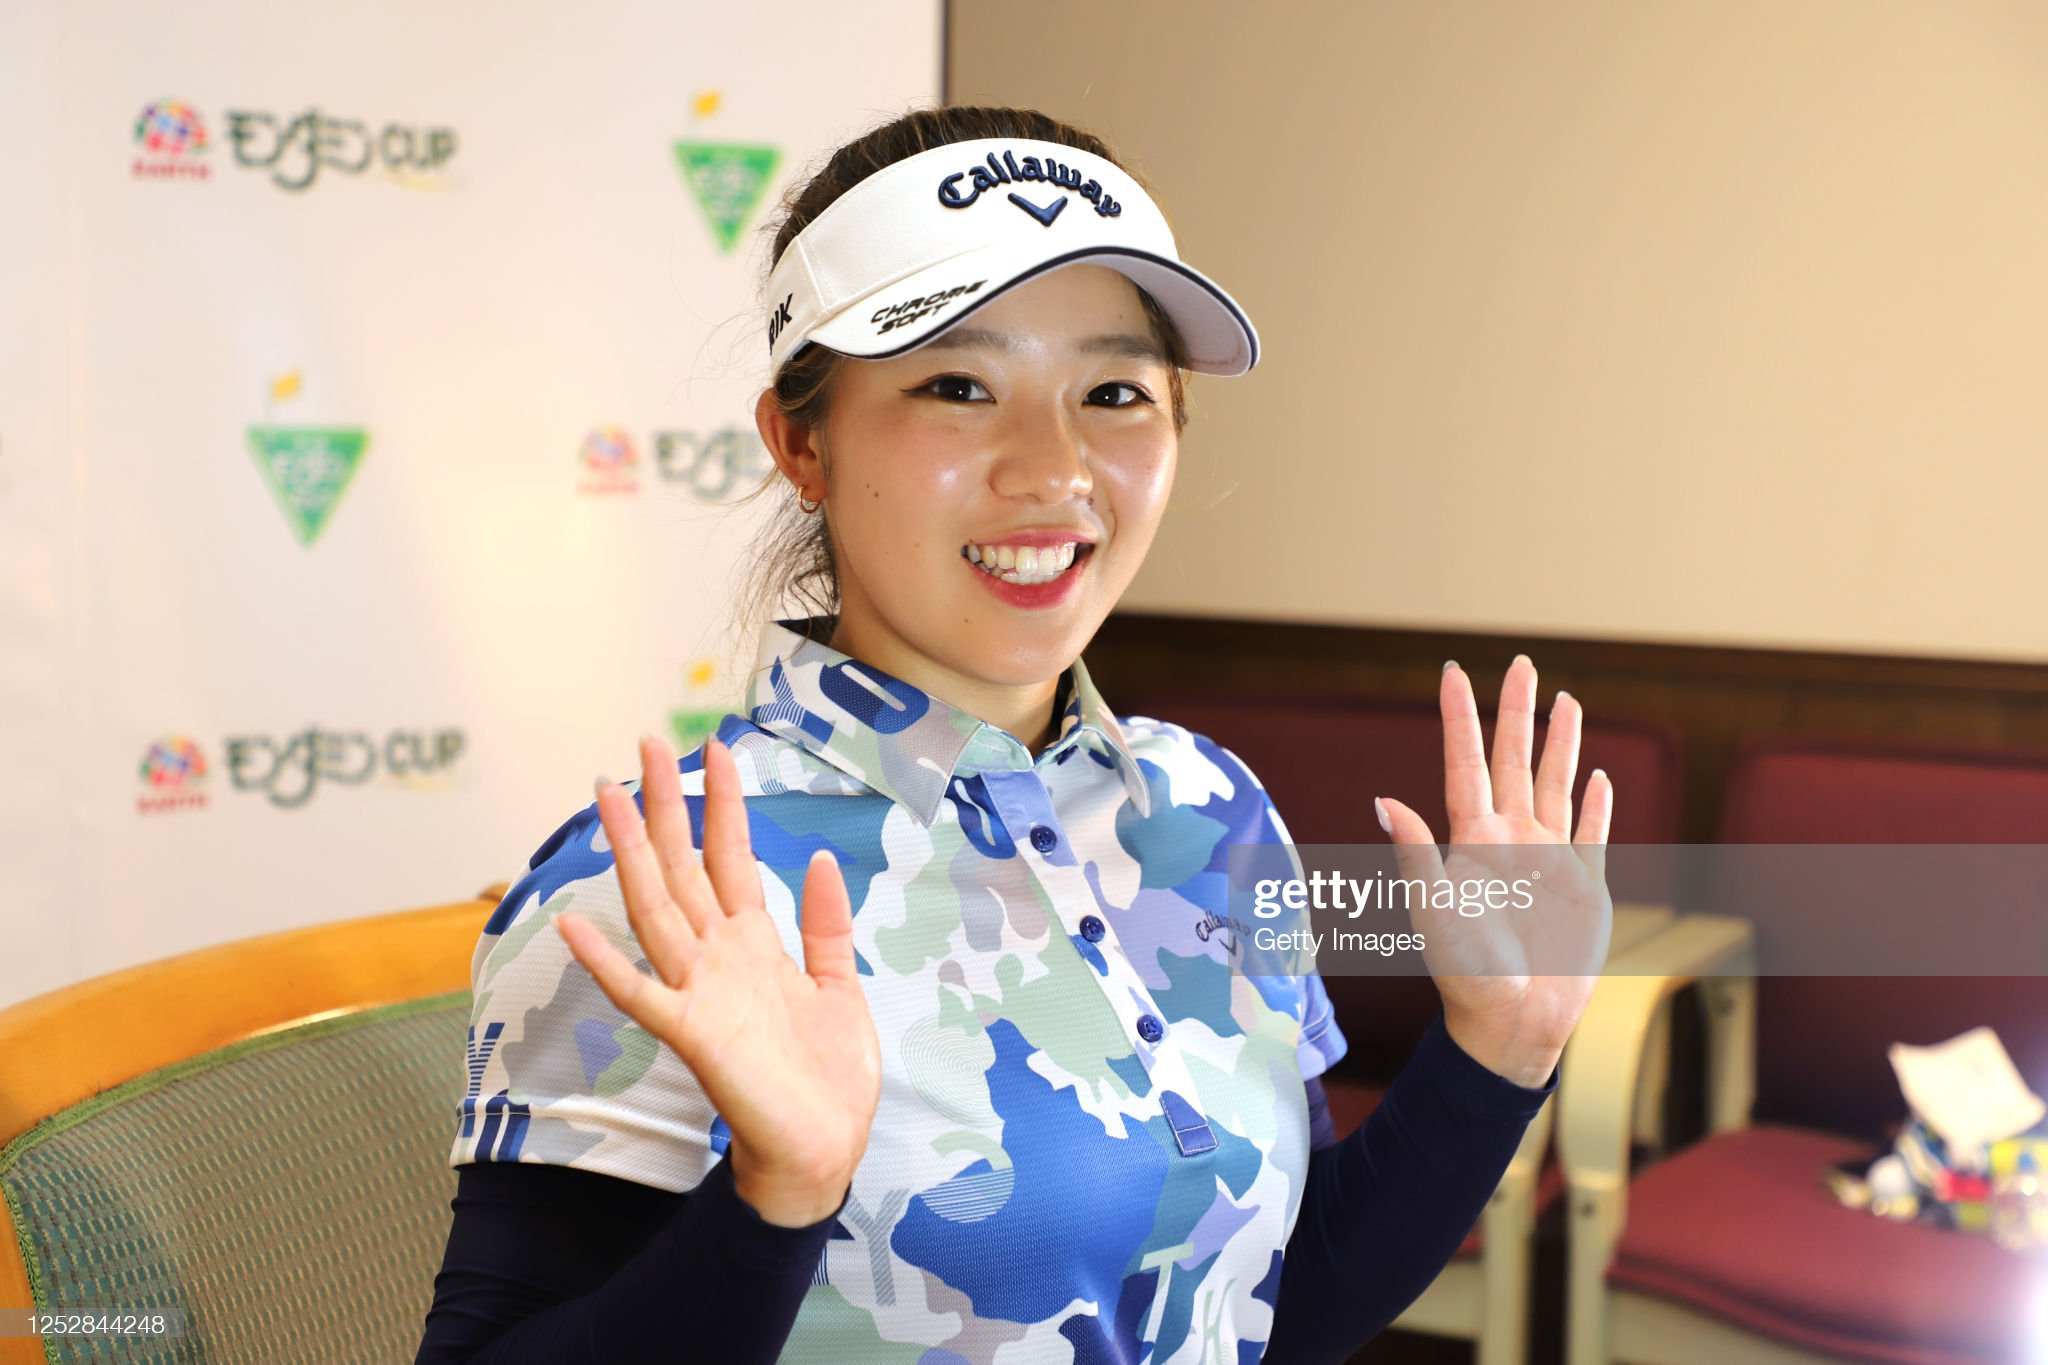 https://media.gettyimages.com/photos/mizuki-tanaka-of-japan-attends-an-online-press-conference-after-the-picture-id1252844248?s=2048x2048